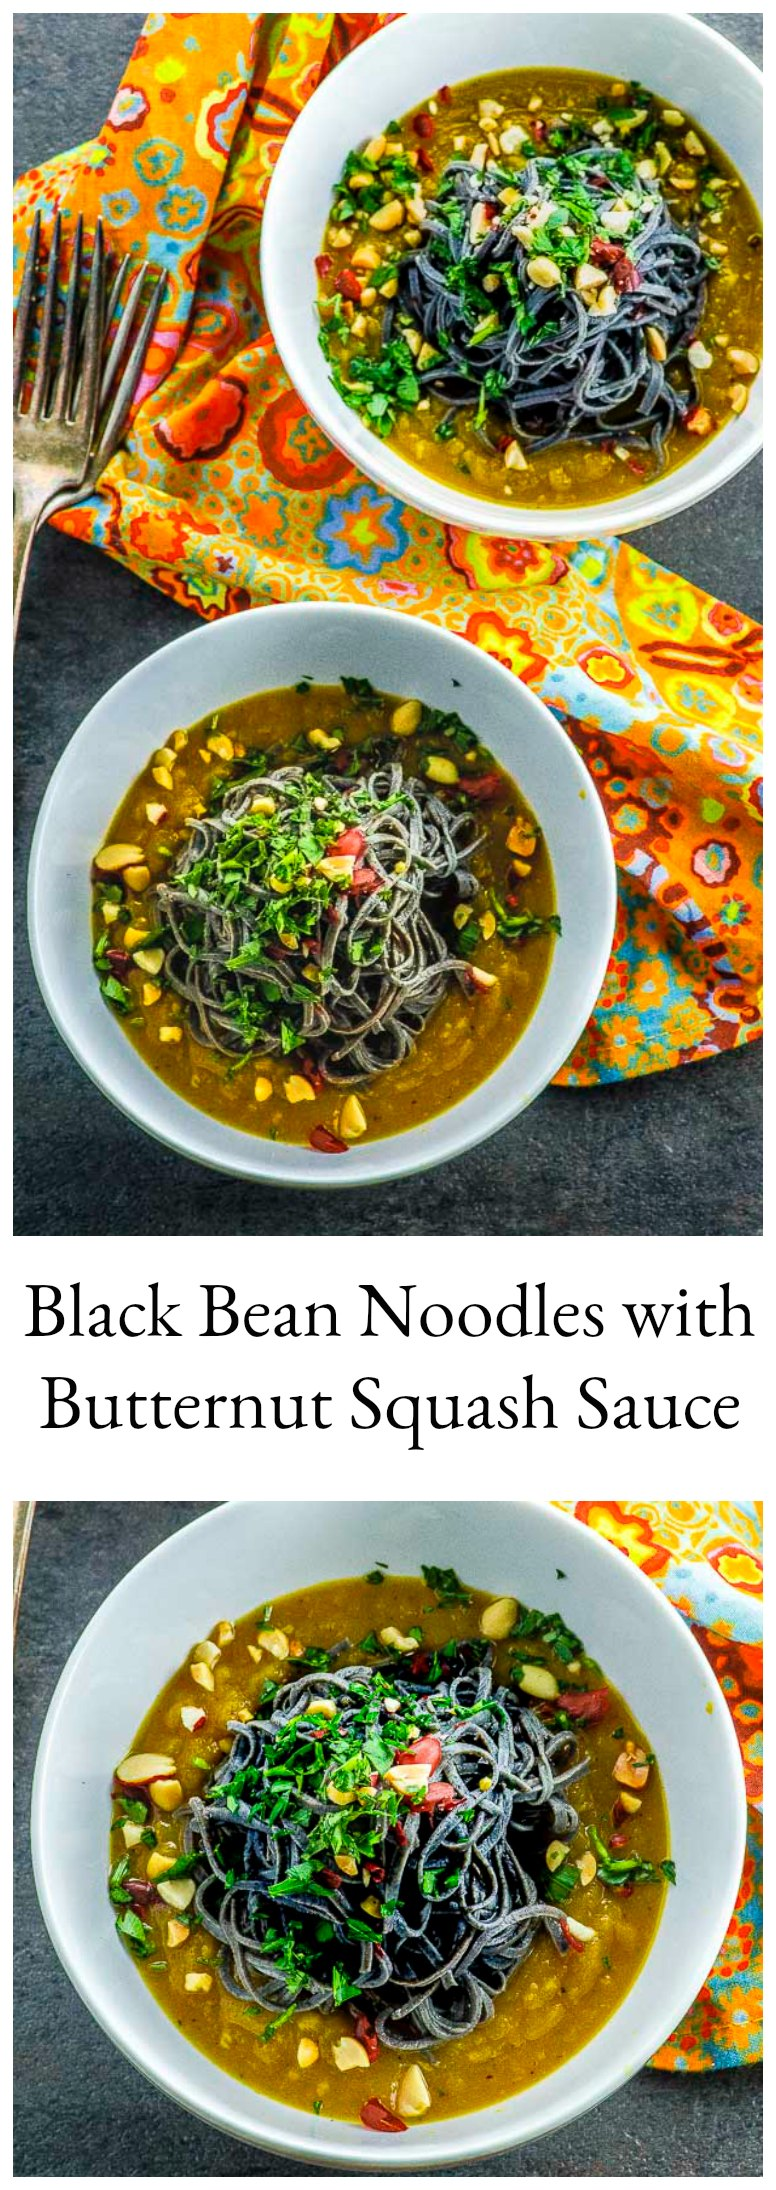 The flavor of these high proteinBlack Bean Noodles with Butternut Squash Sauce is enhanced with the light and creamy butternut squash sauce with Asian influenced flavors. Ready in 30 minutes !